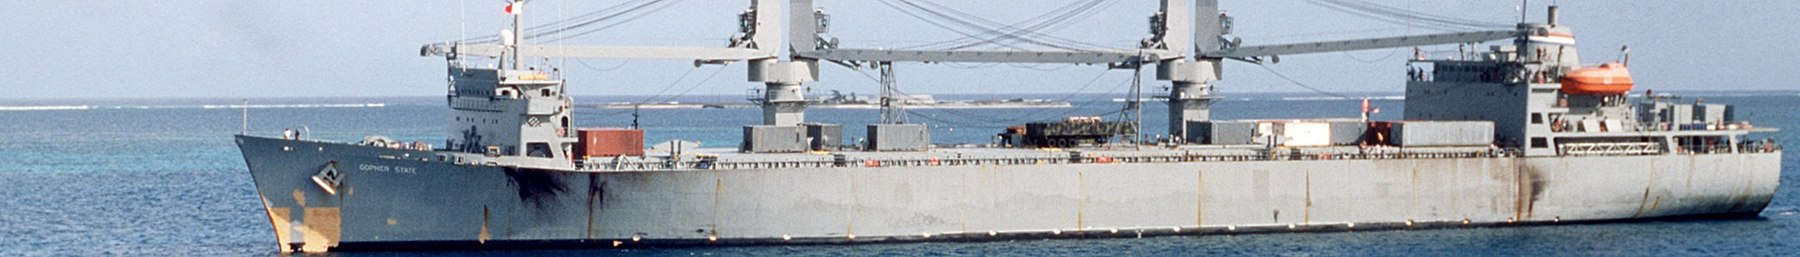 WV banner Johnston Atoll SS Flickertail.jpg